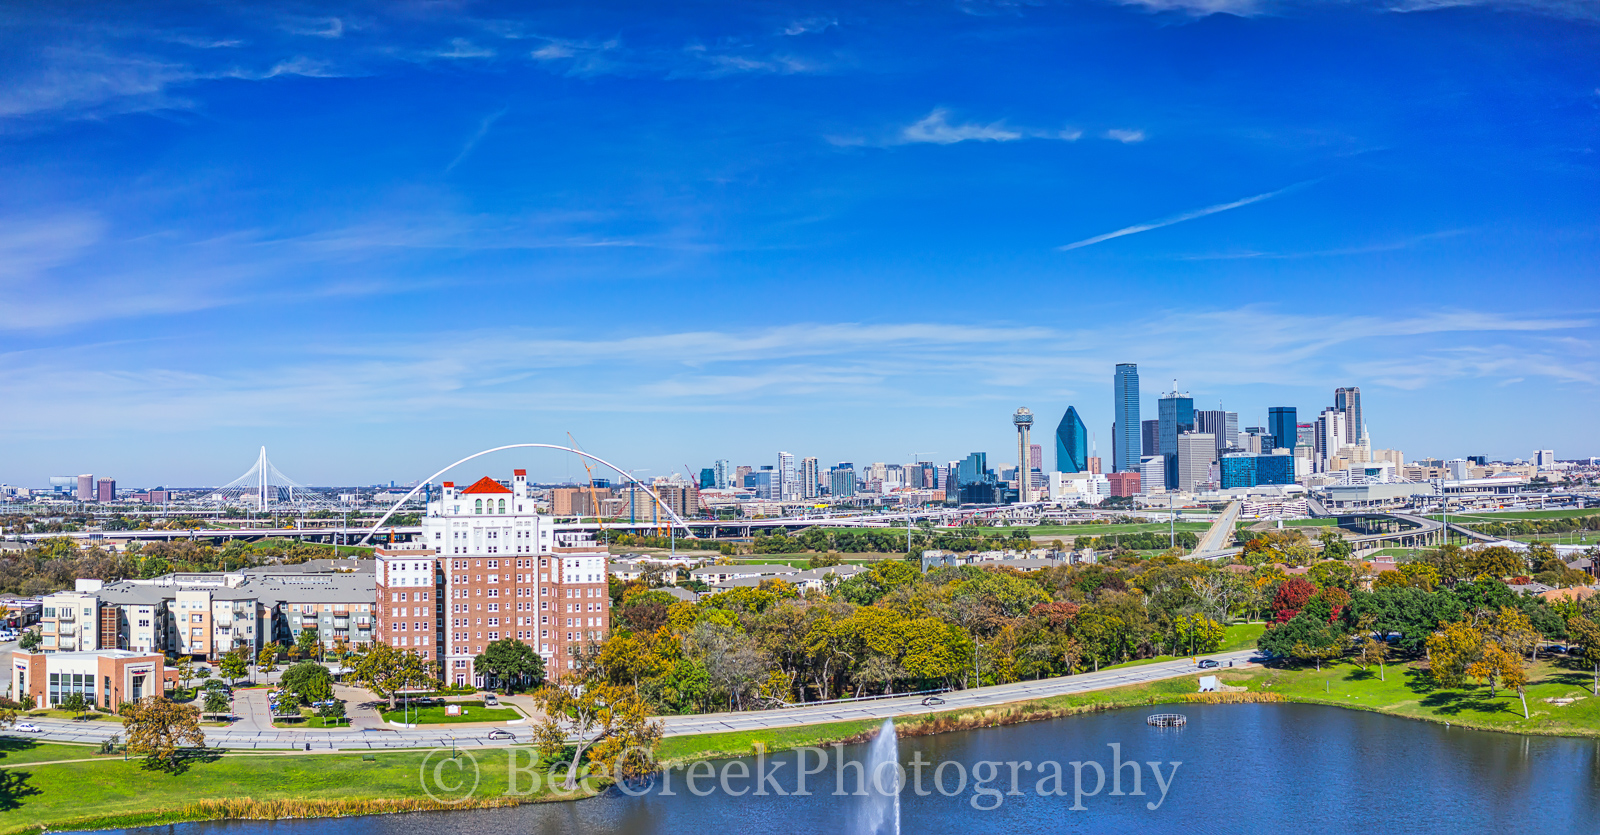 Bridge, Dallas, Foutain Place, Heritage Plaza, Margaret Hunt Hill bridge, Omin, bank of america, city, cityscape, cityscapes, fountain, park, reunion tower, skyline, water, photo